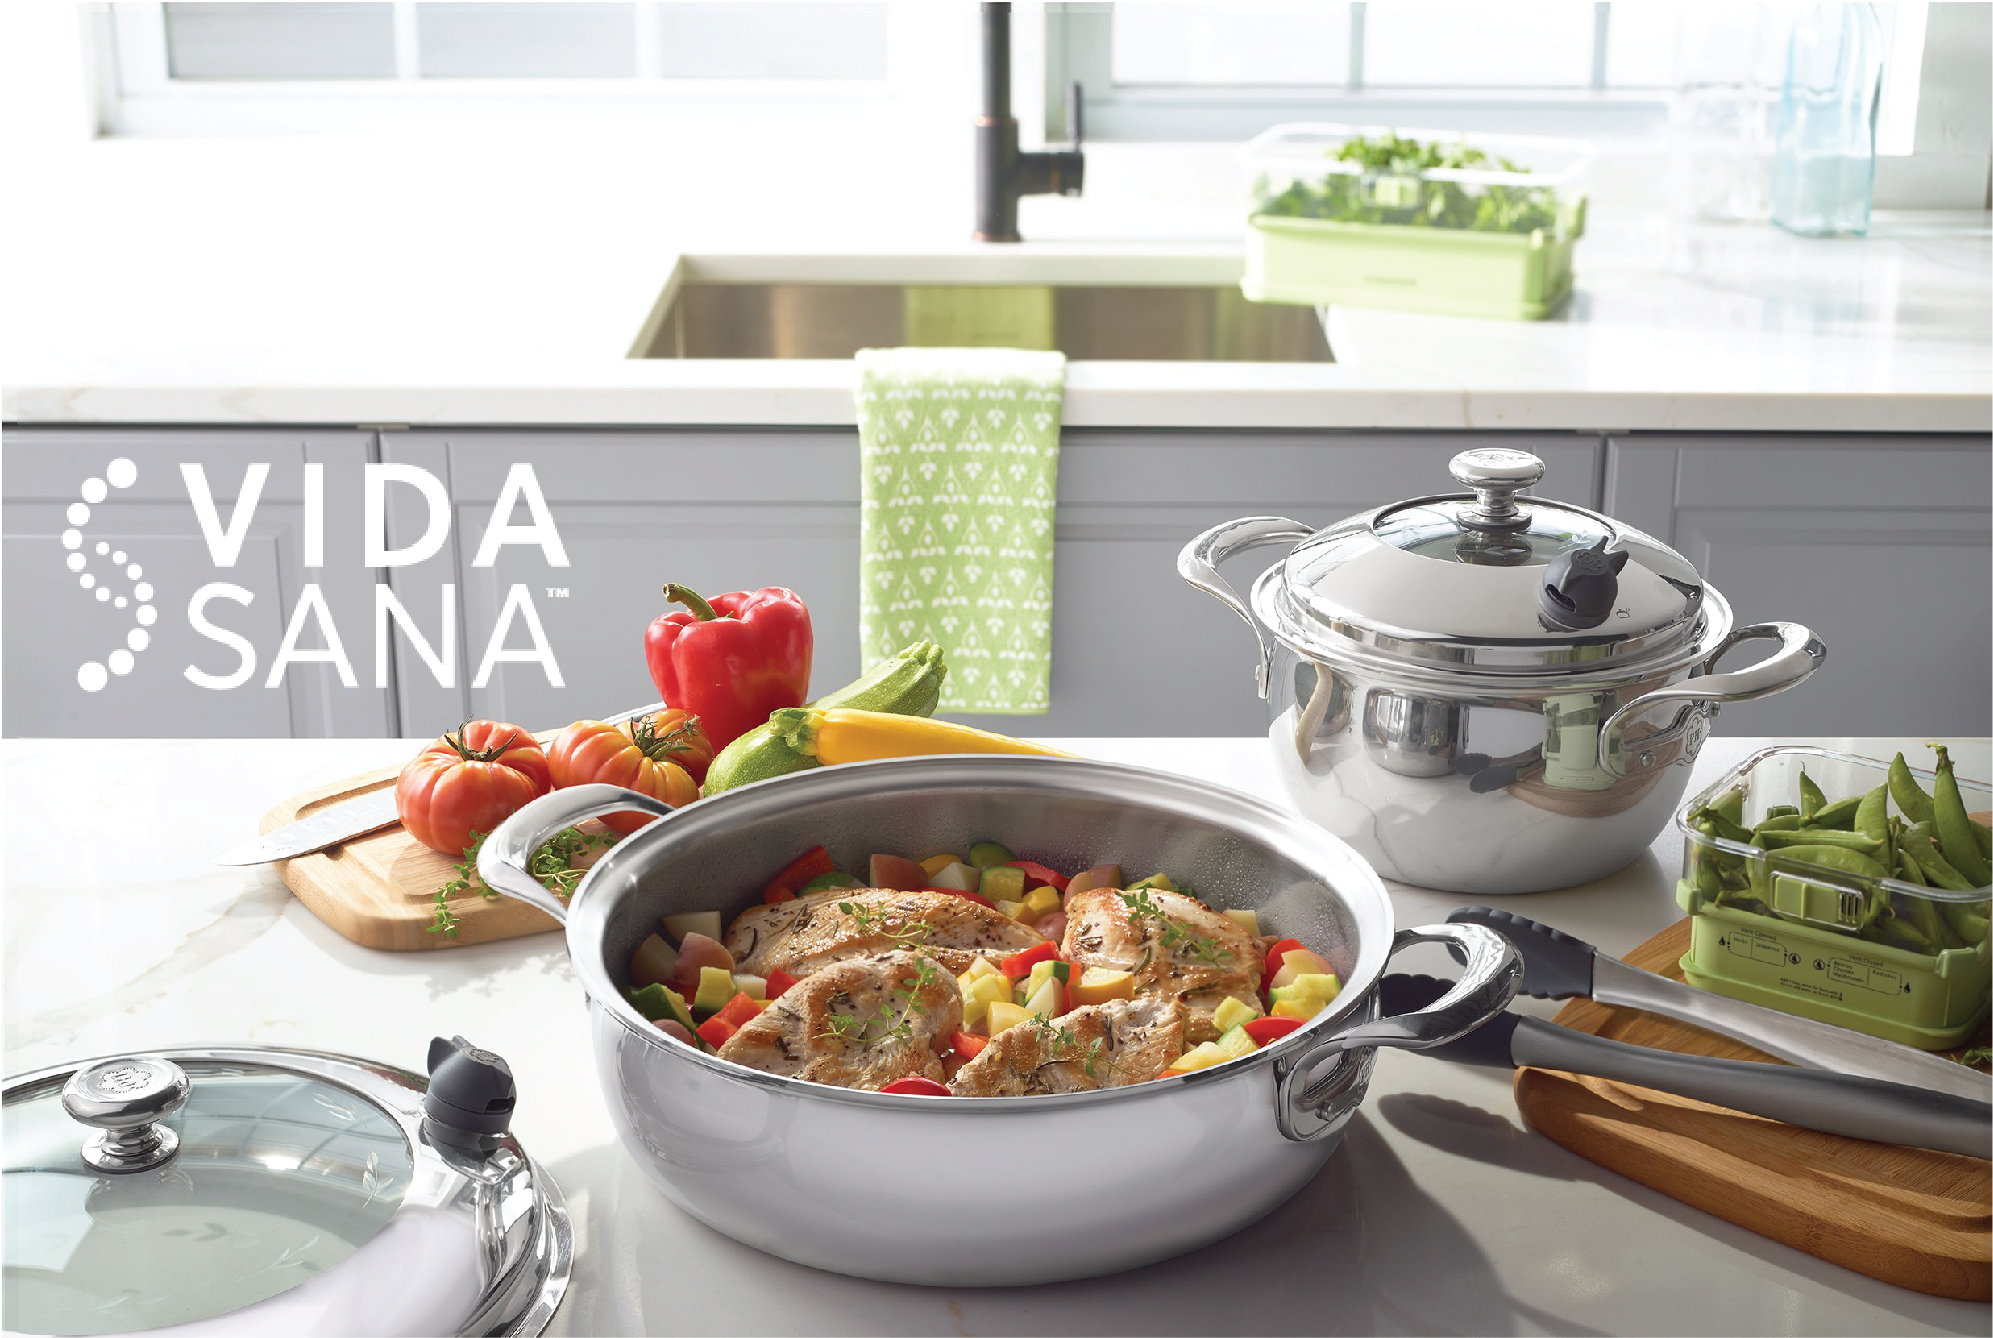 Vida-Sana Product Development